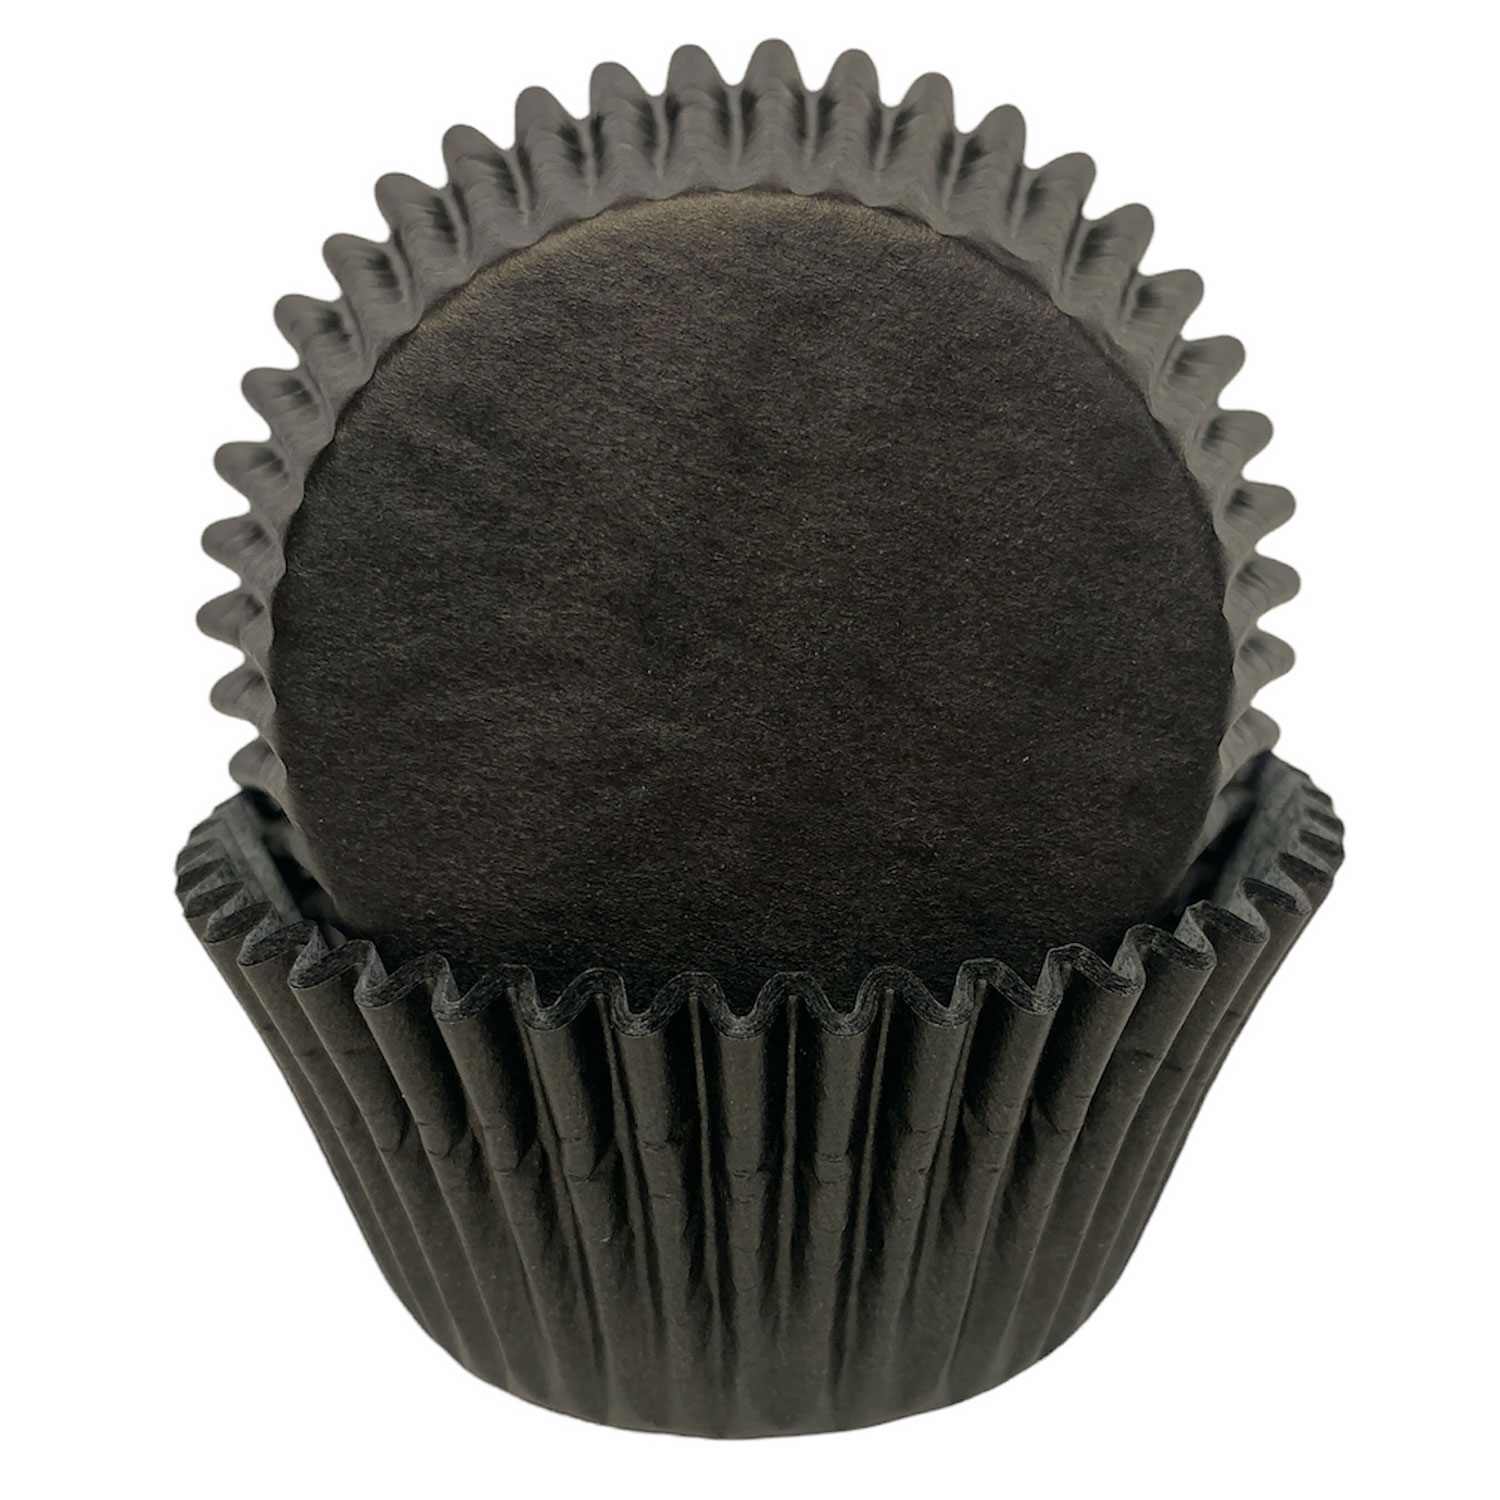 Solid Black Standard Baking Cups